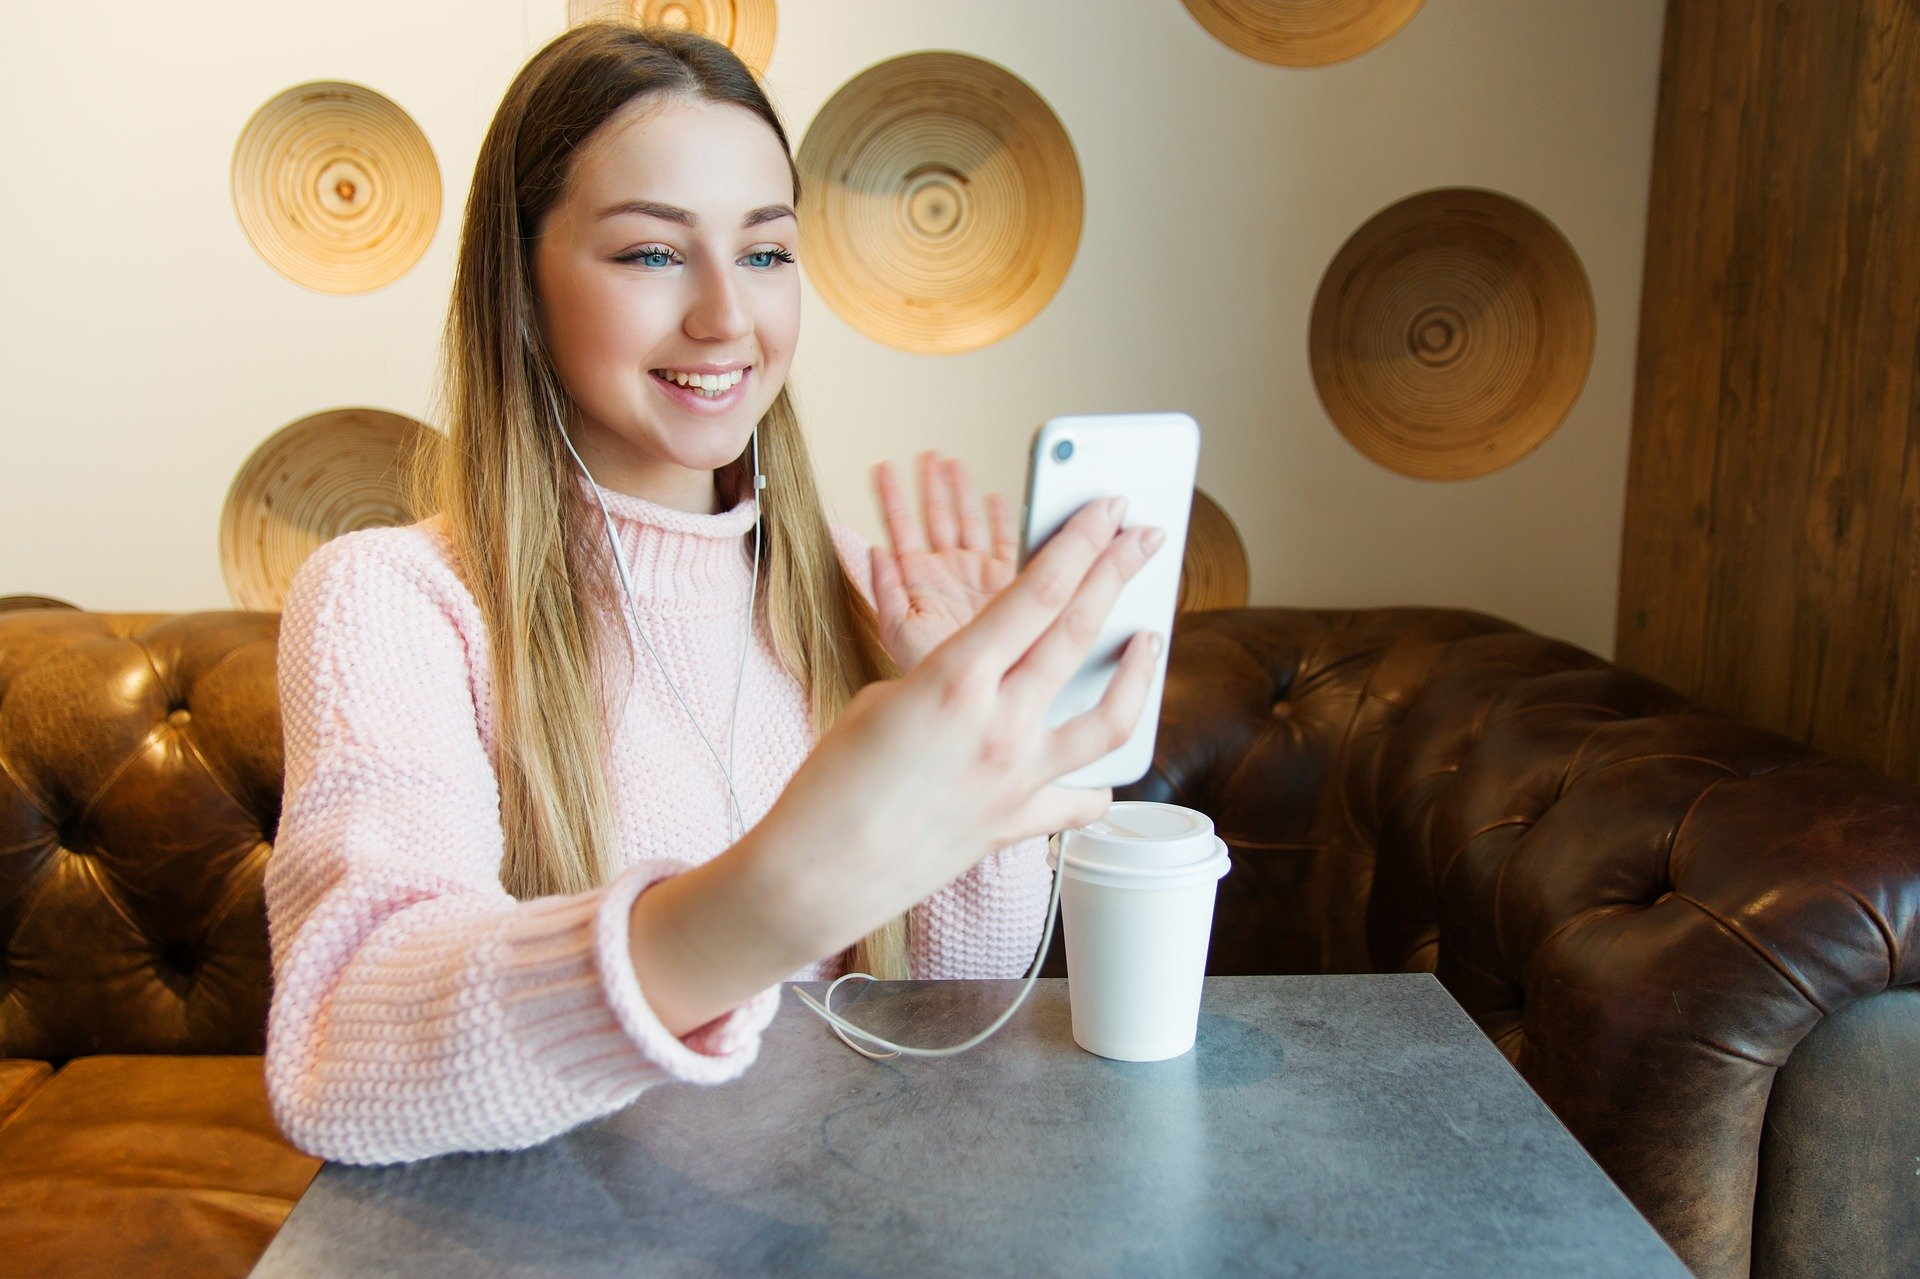 A girl wearing headphones holds up a phone and waves to someone on e video call. She sits on a brown couch and a grey table and a white travel coffee cup sits on the table.